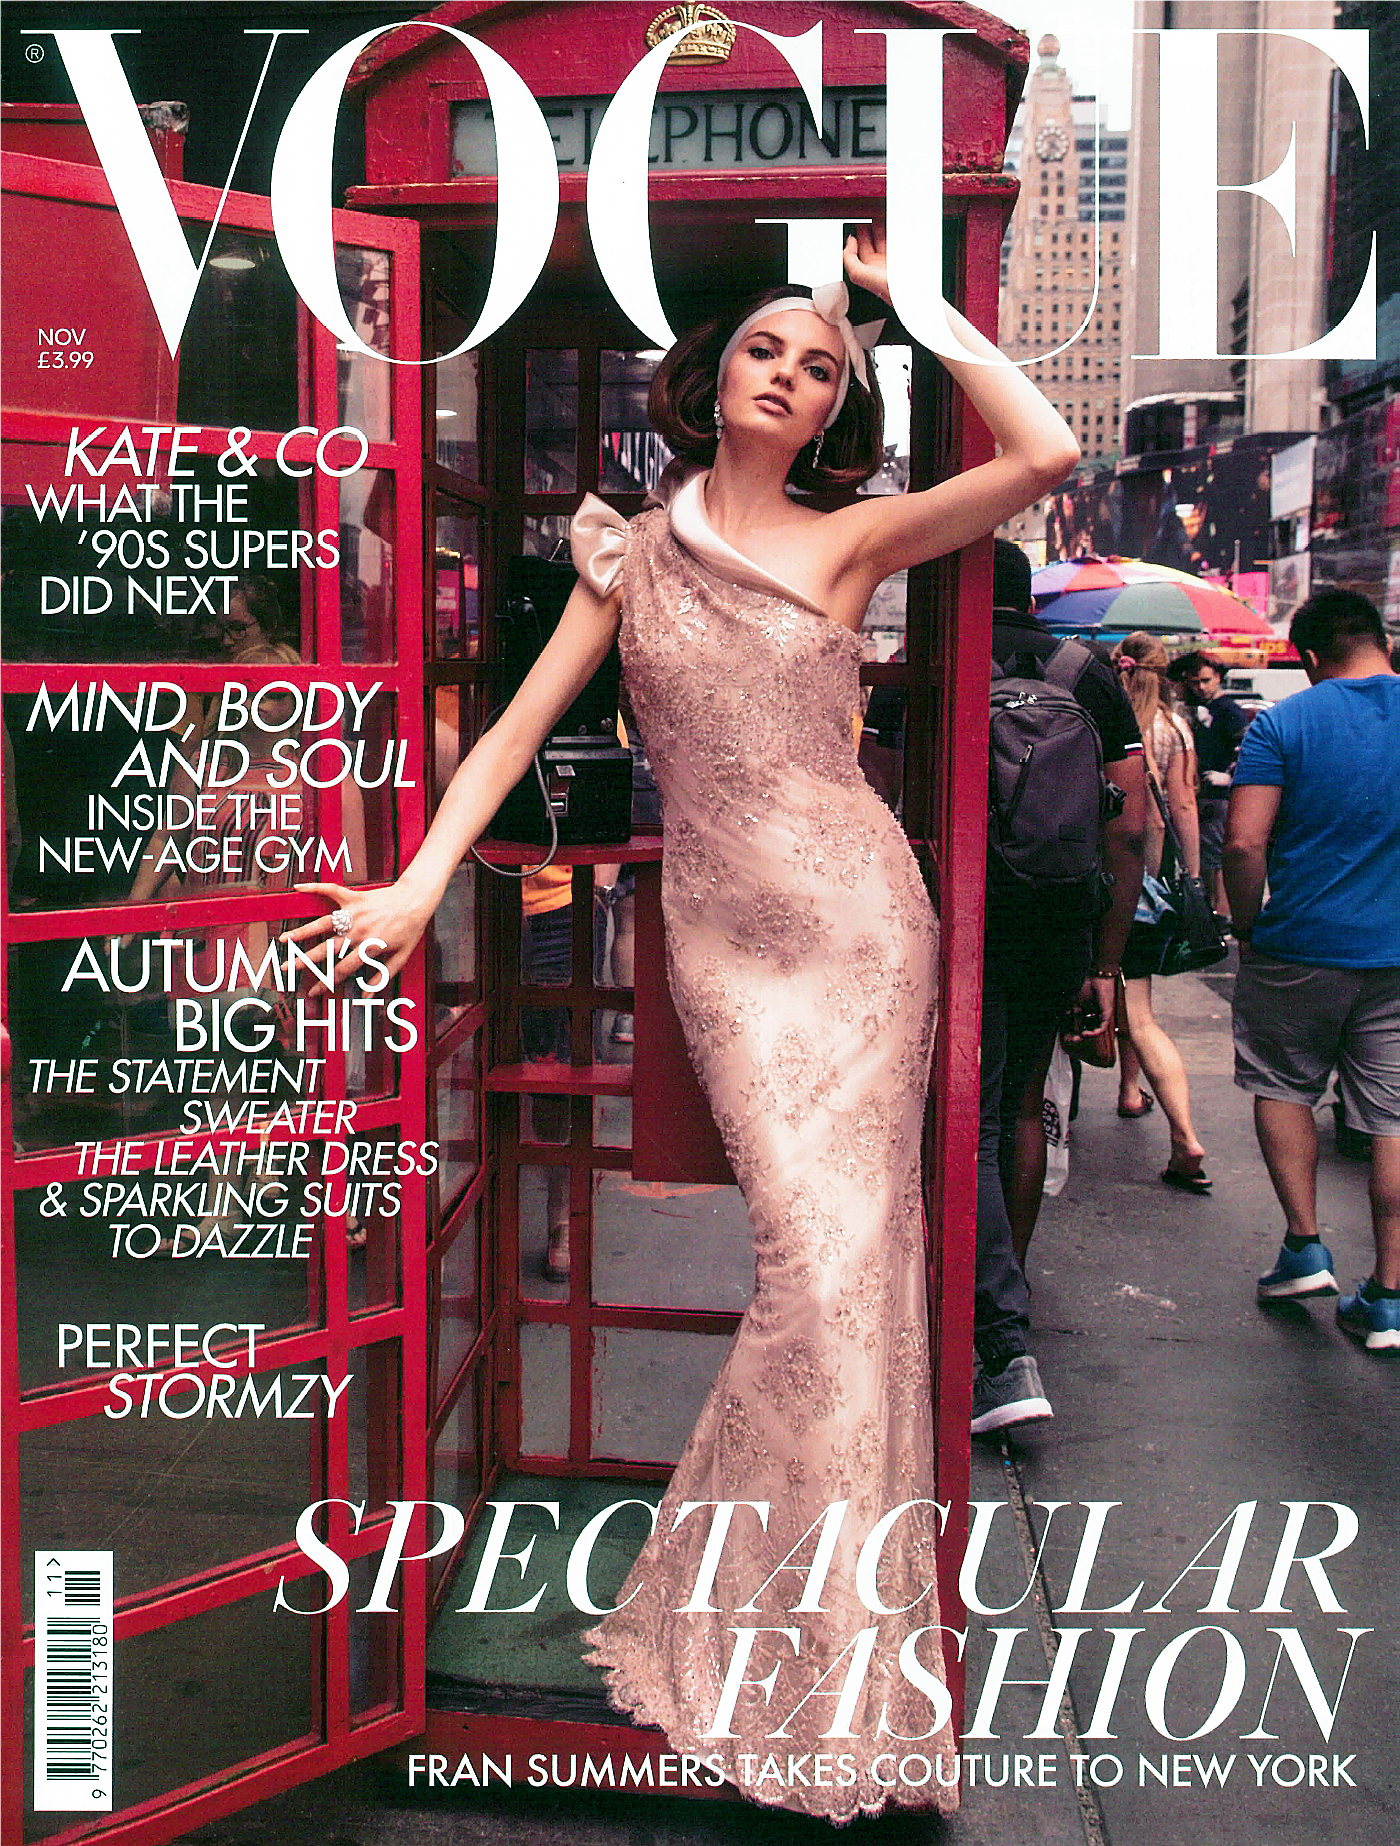 IMWIM British Vogue Nov Issue Designer Profile Cover